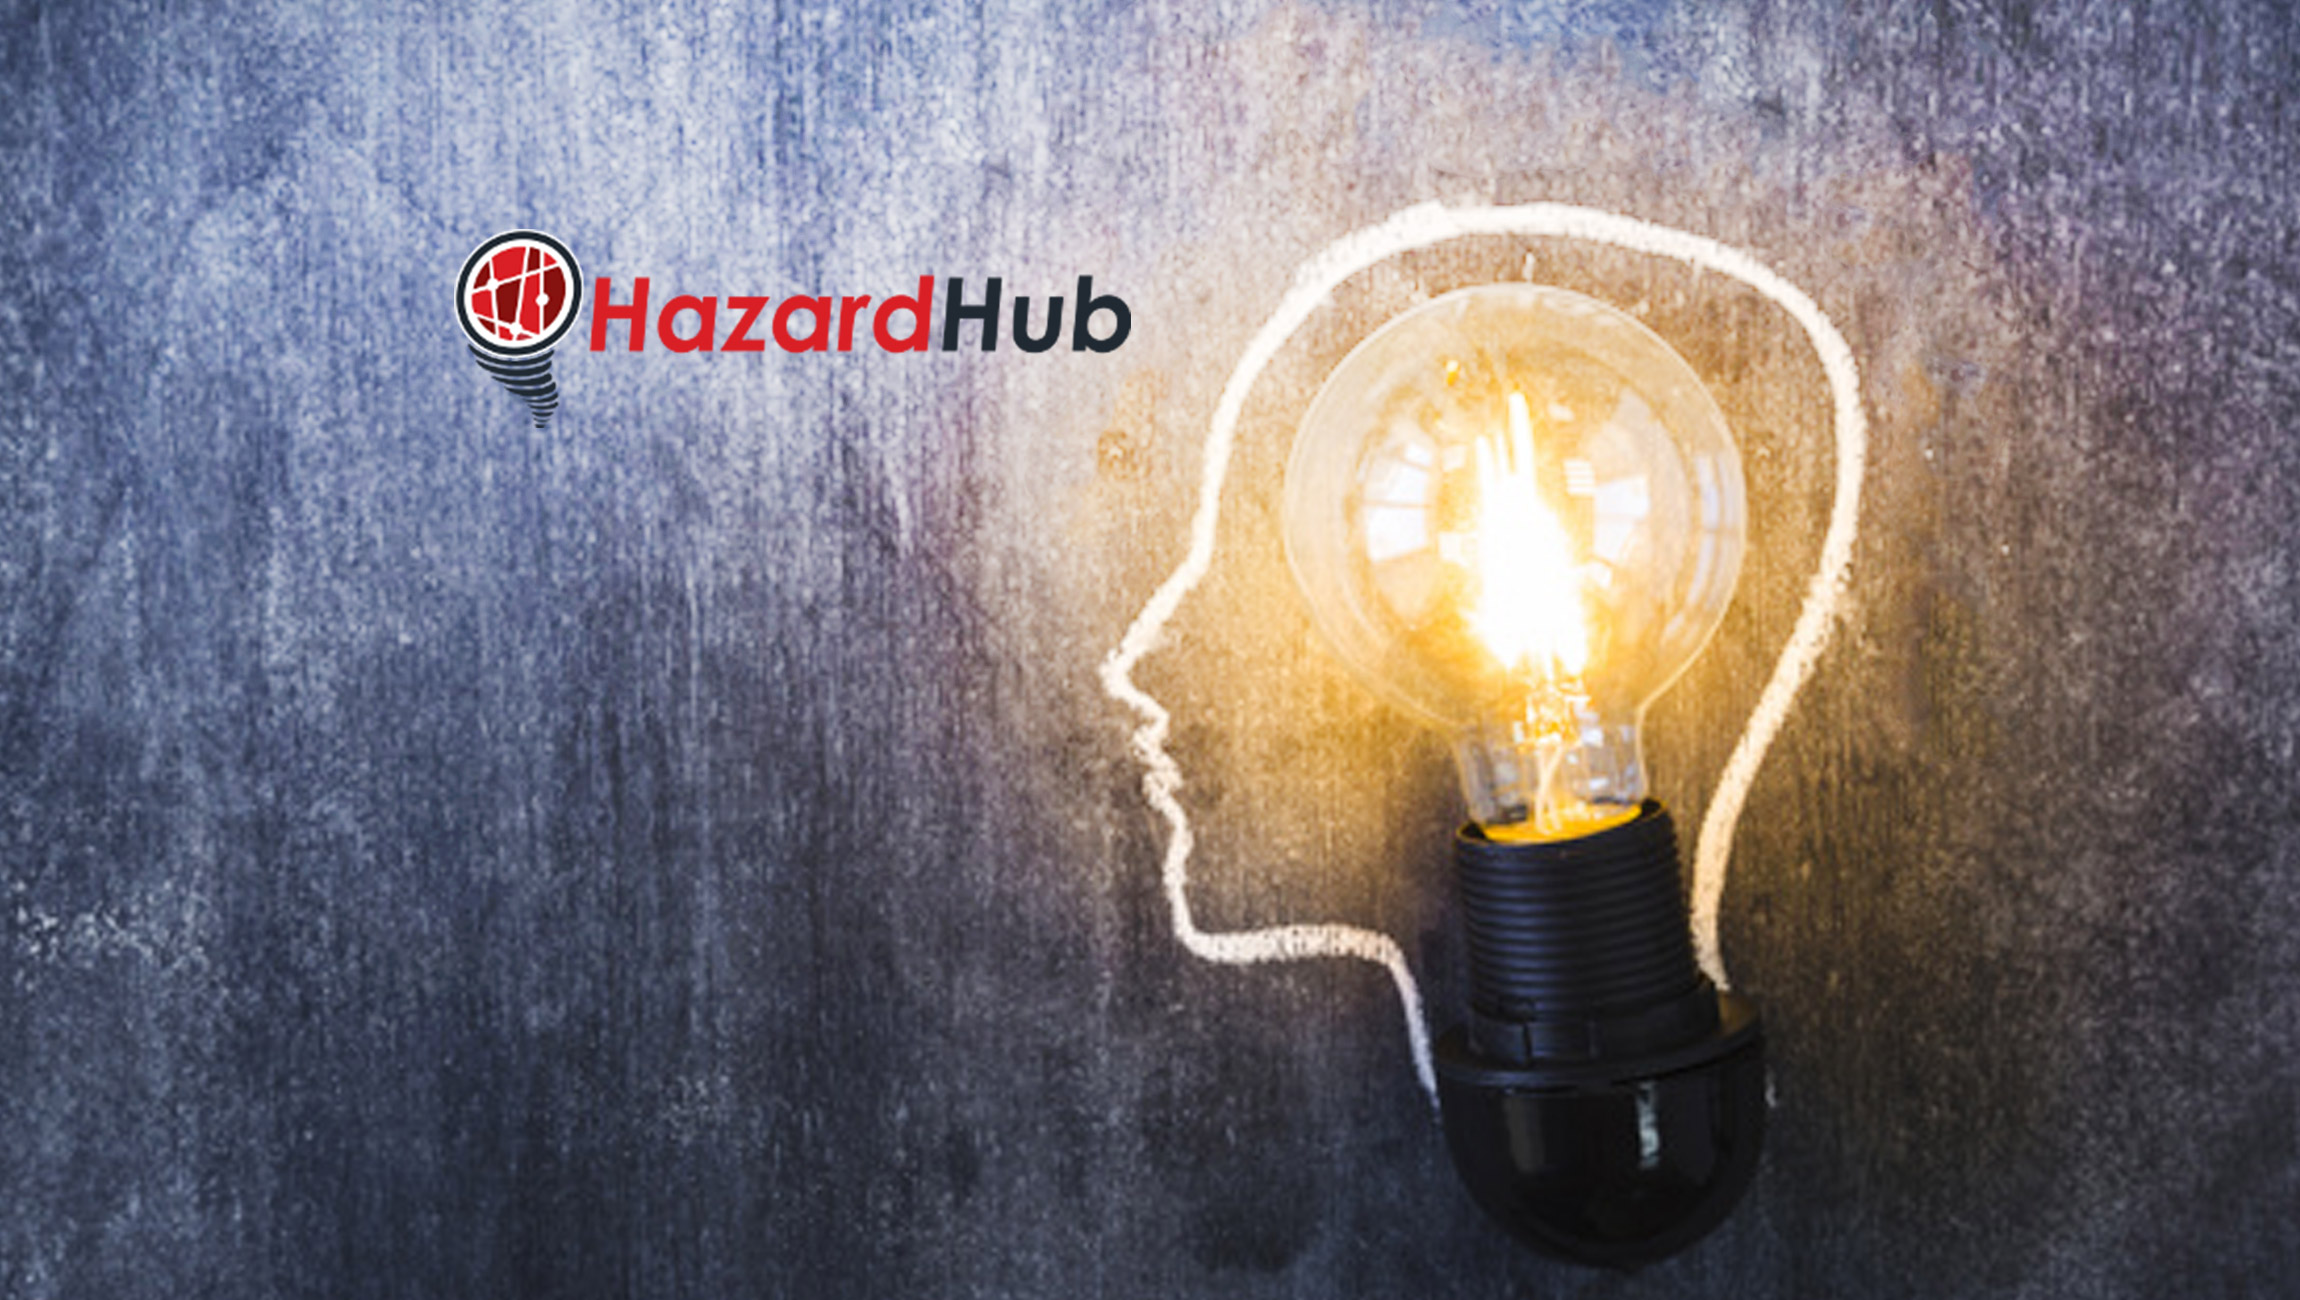 Hazardhub Named to the Insurtech 100 List of the World's Most Innovative Companies